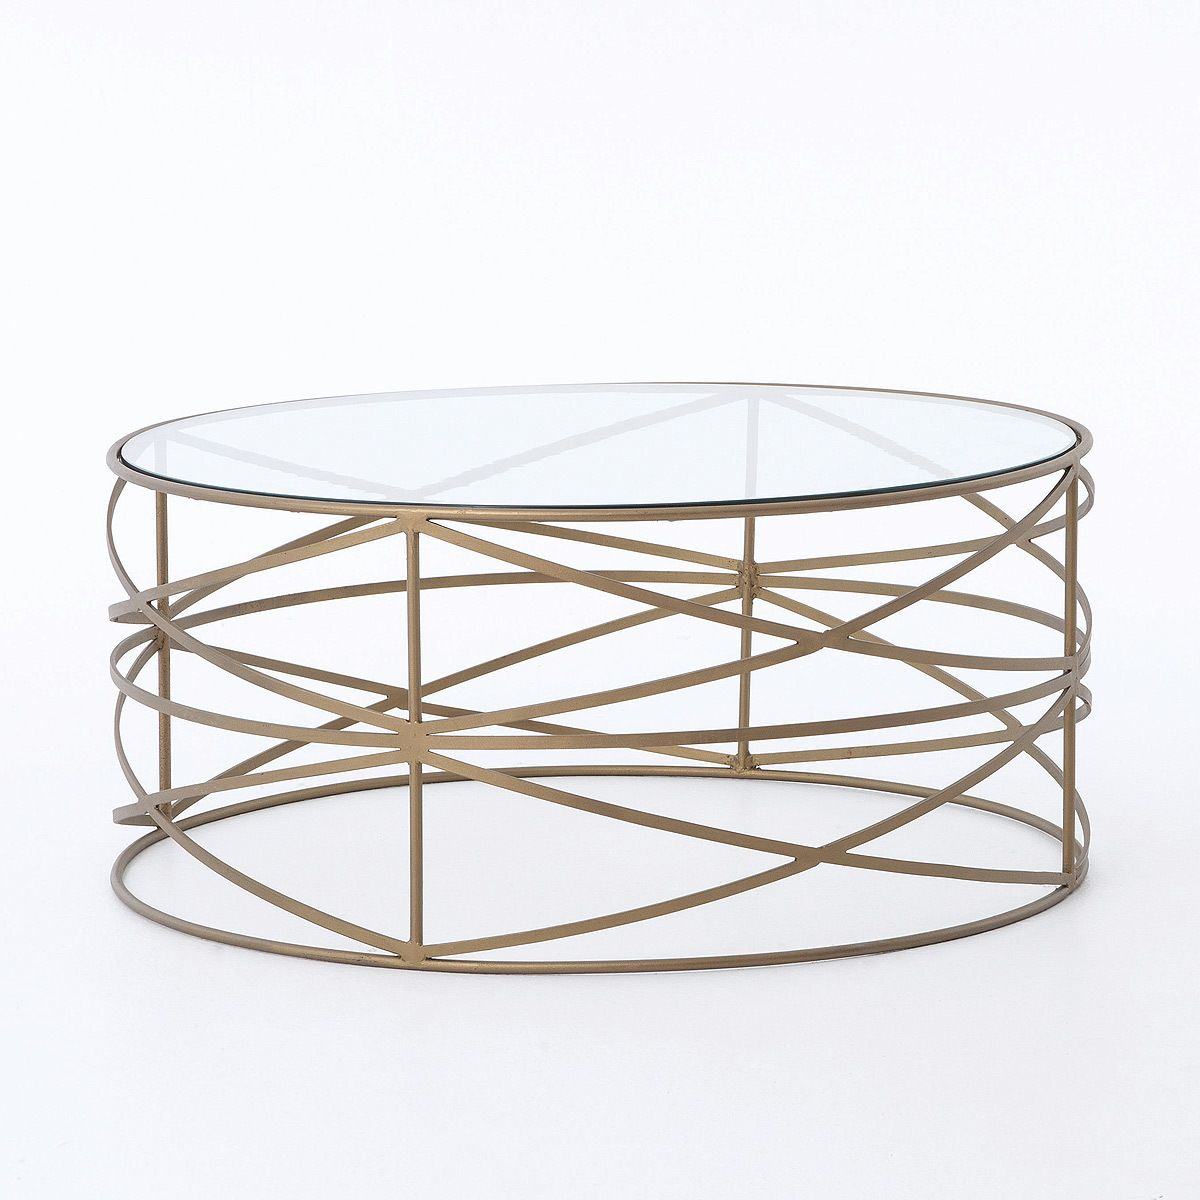 Greer Matte Brass Round Coffee Table With Glass Top Brass Round Coffee Table Brass Coffee Table Geometric Coffee Table [ 1200 x 1200 Pixel ]